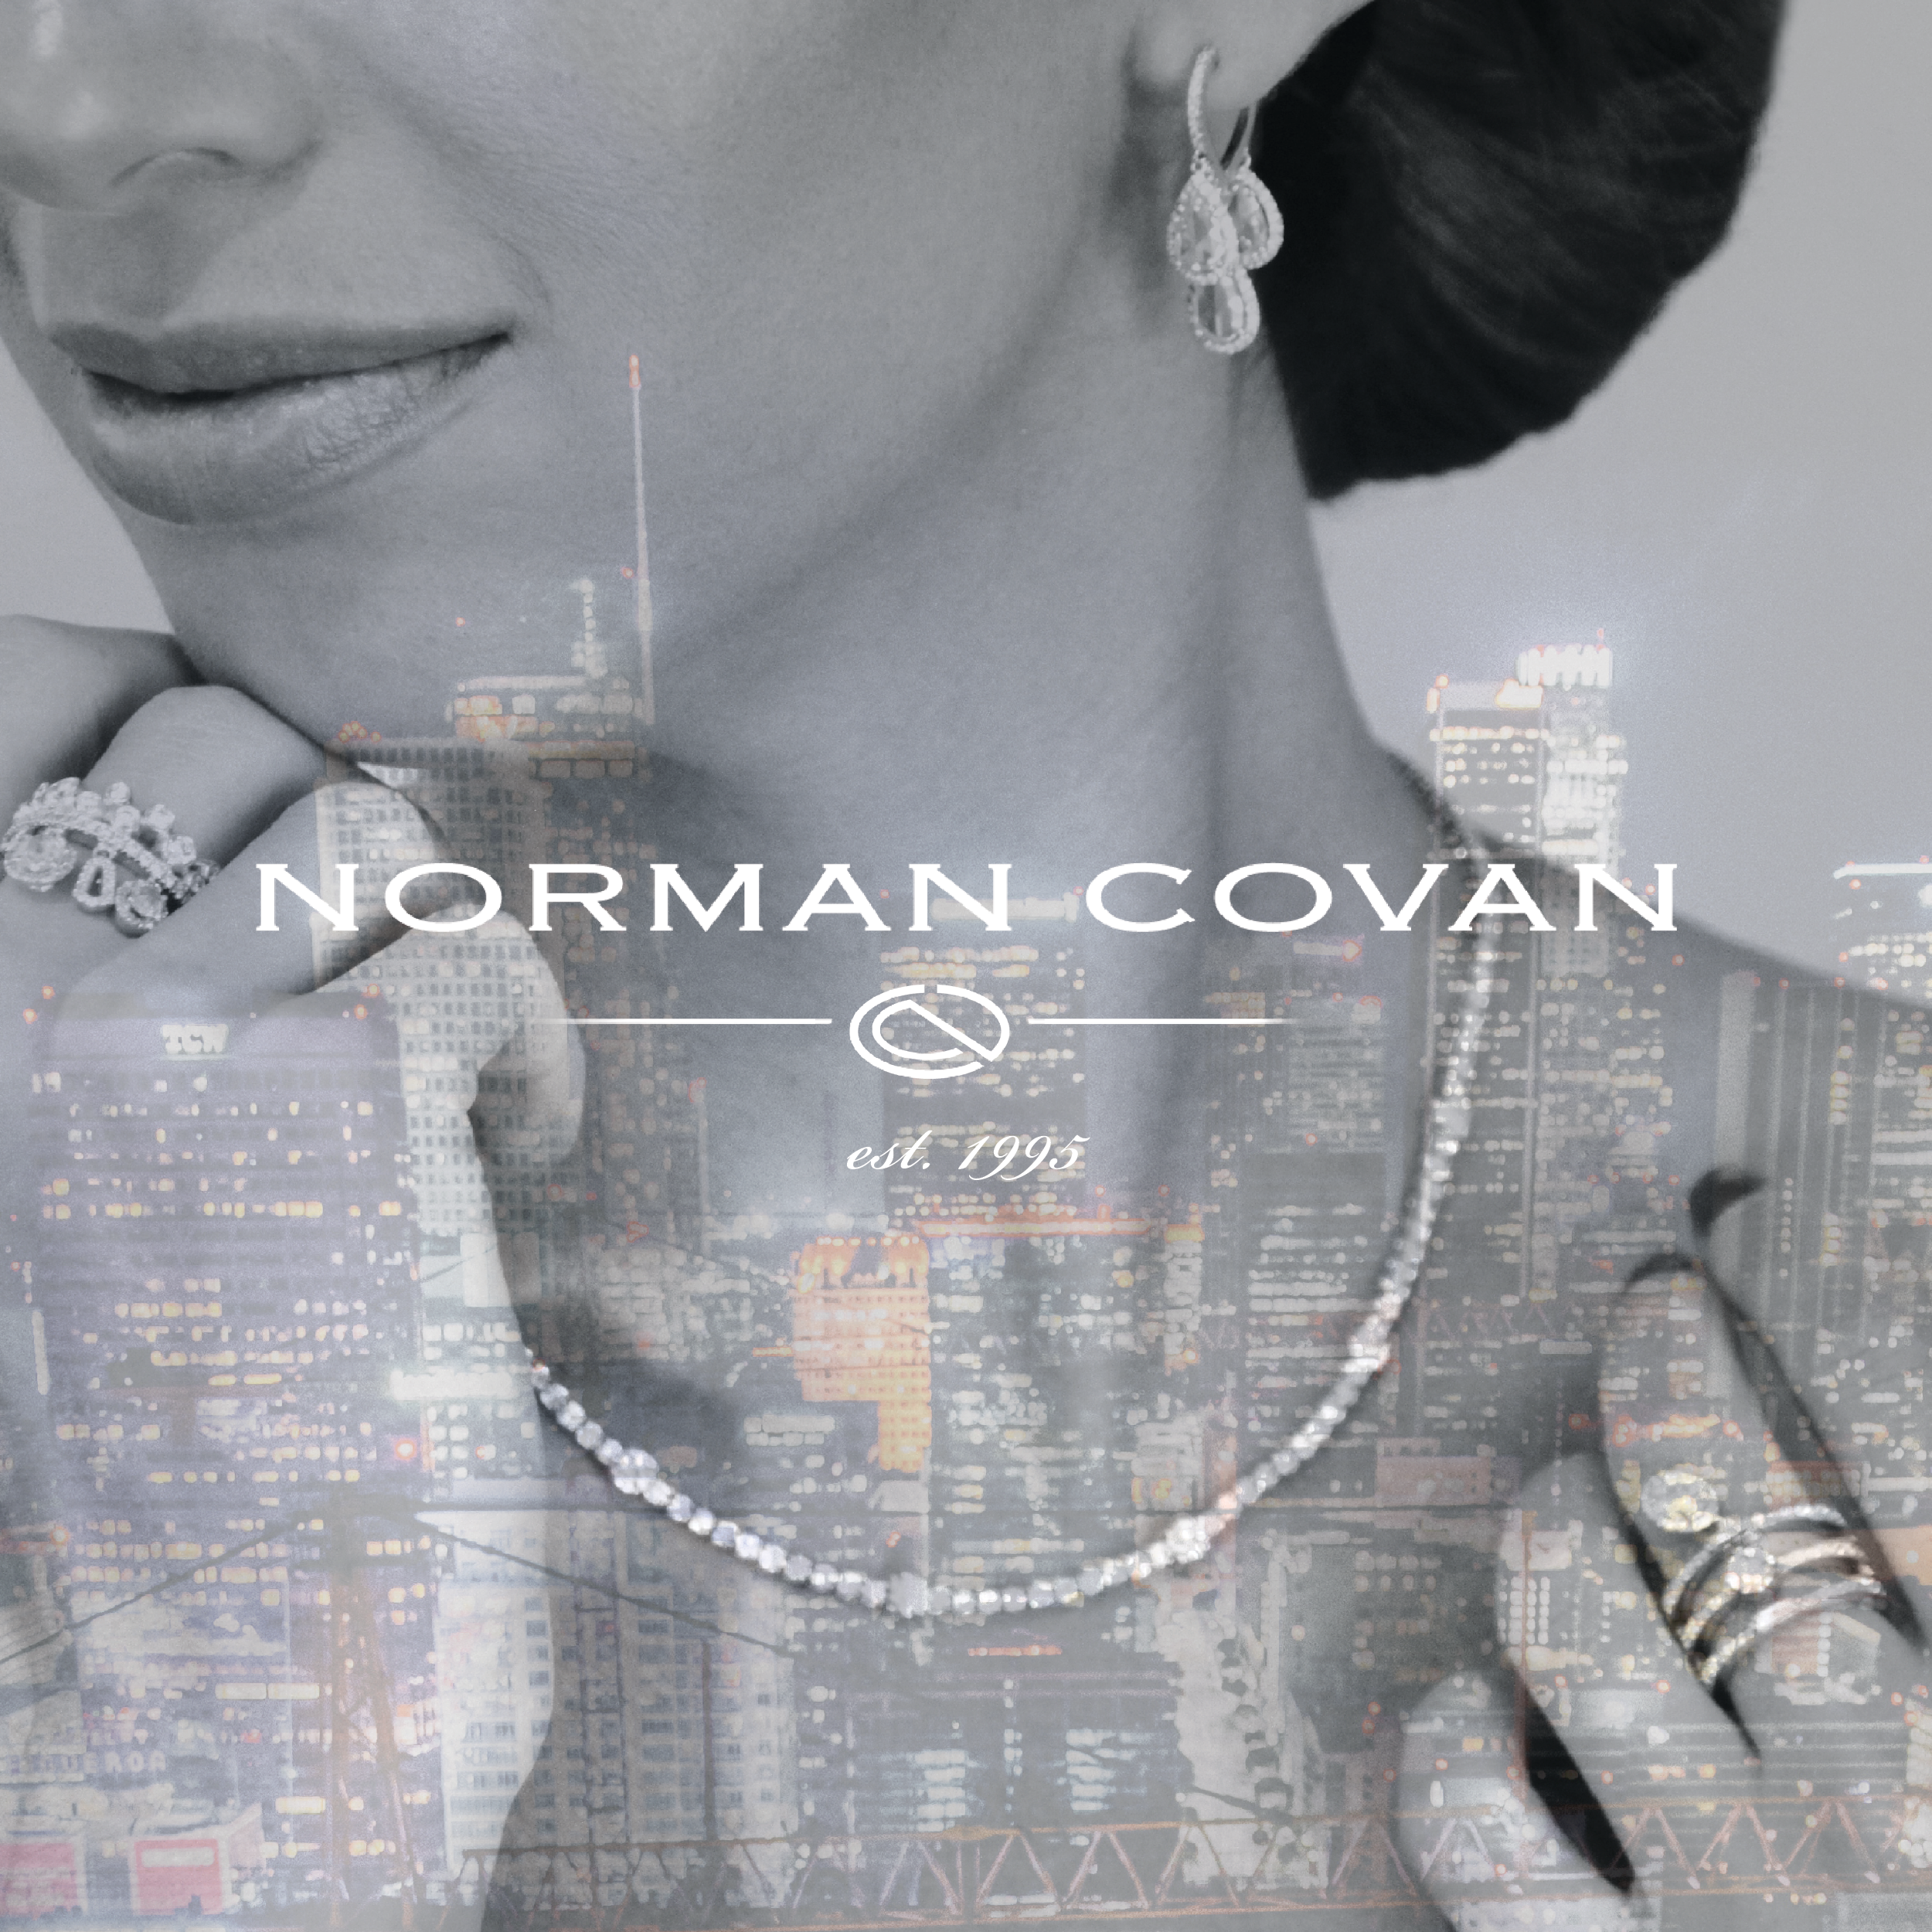 Norman+Covan+Feature.png